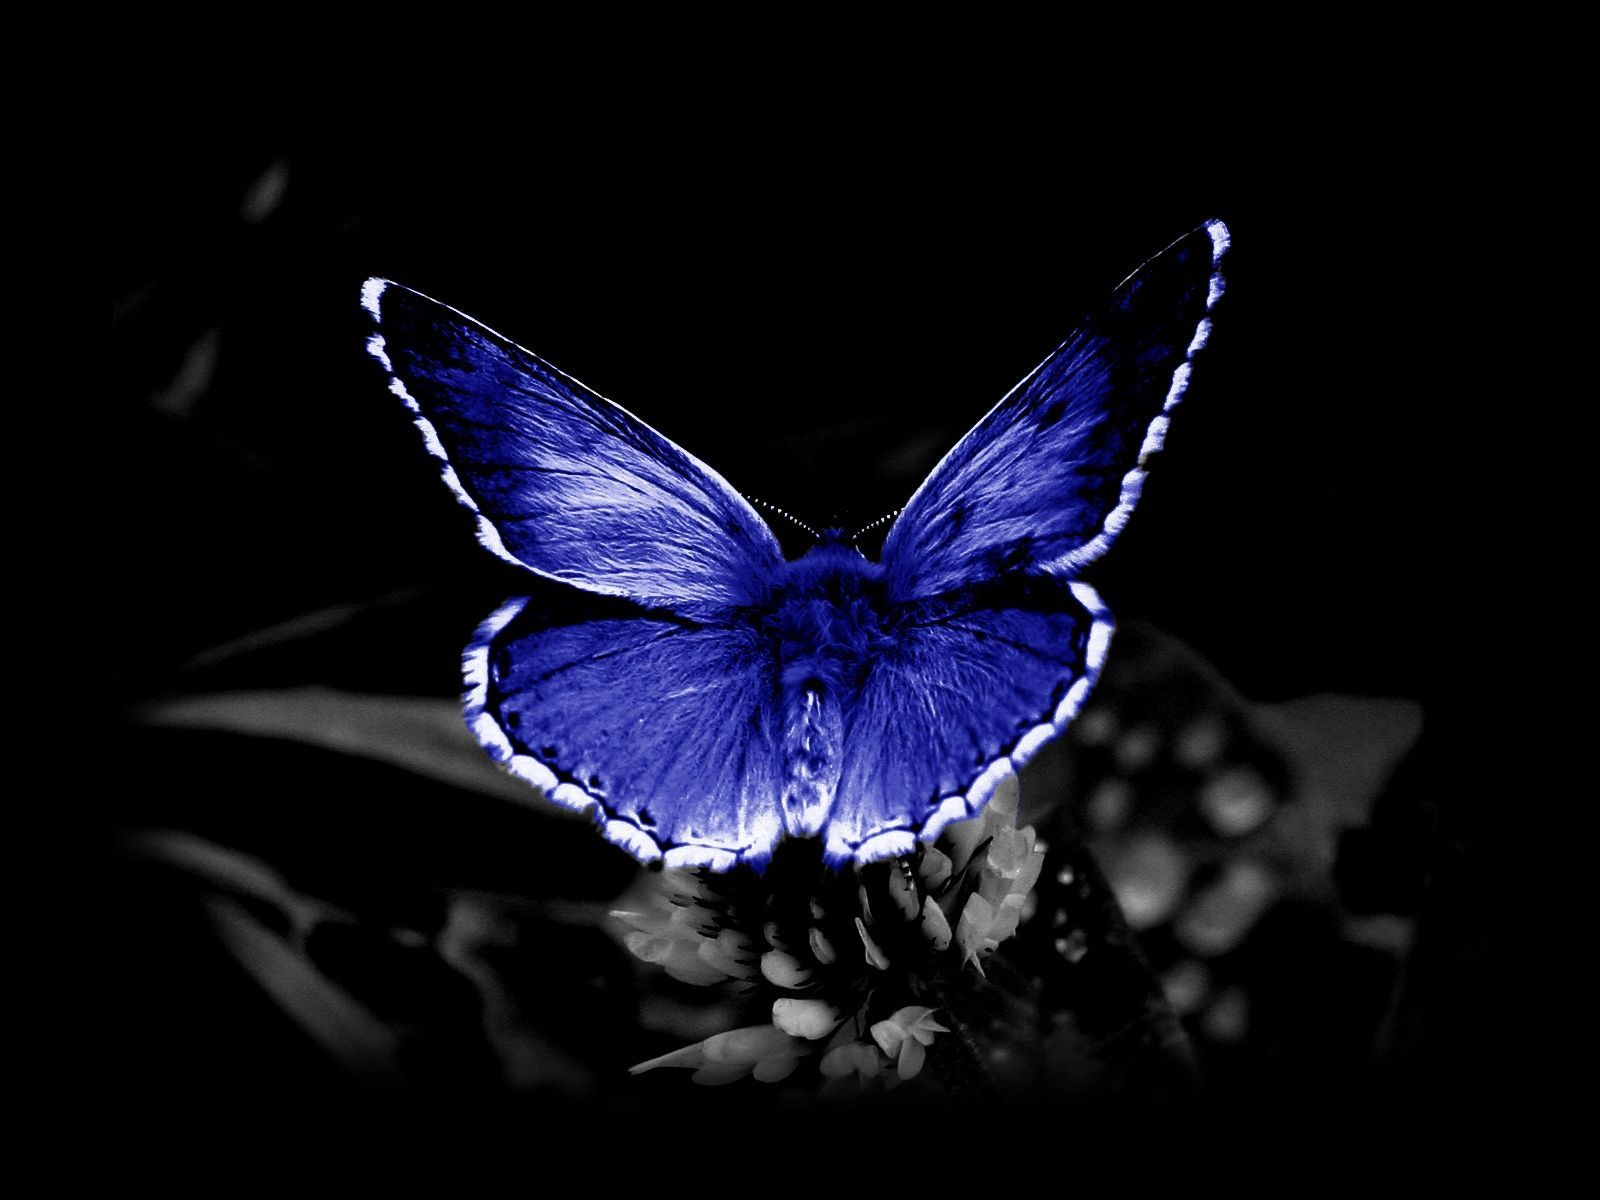 Butterfly Wallpapers Free Download Group  66   High Definition butterfly wallpaper for free download